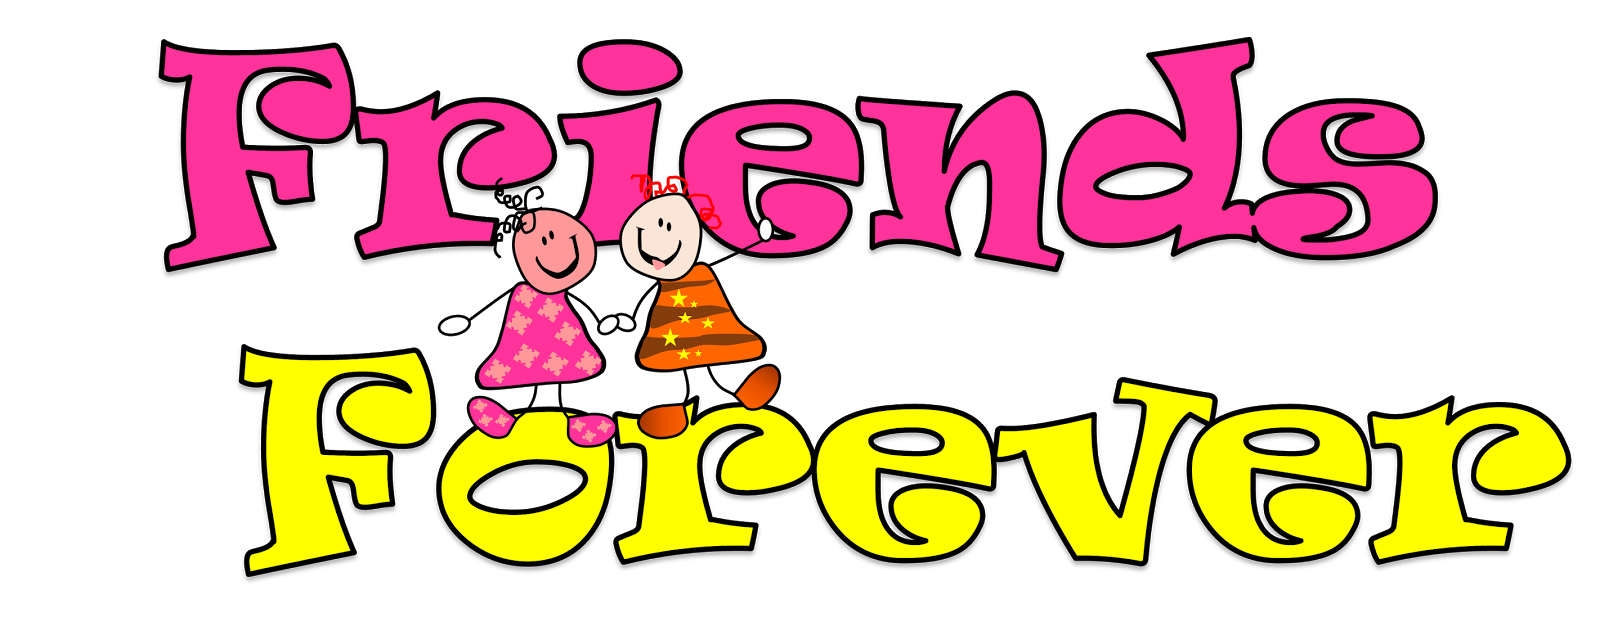 Words clipart pink. Creationz click on the